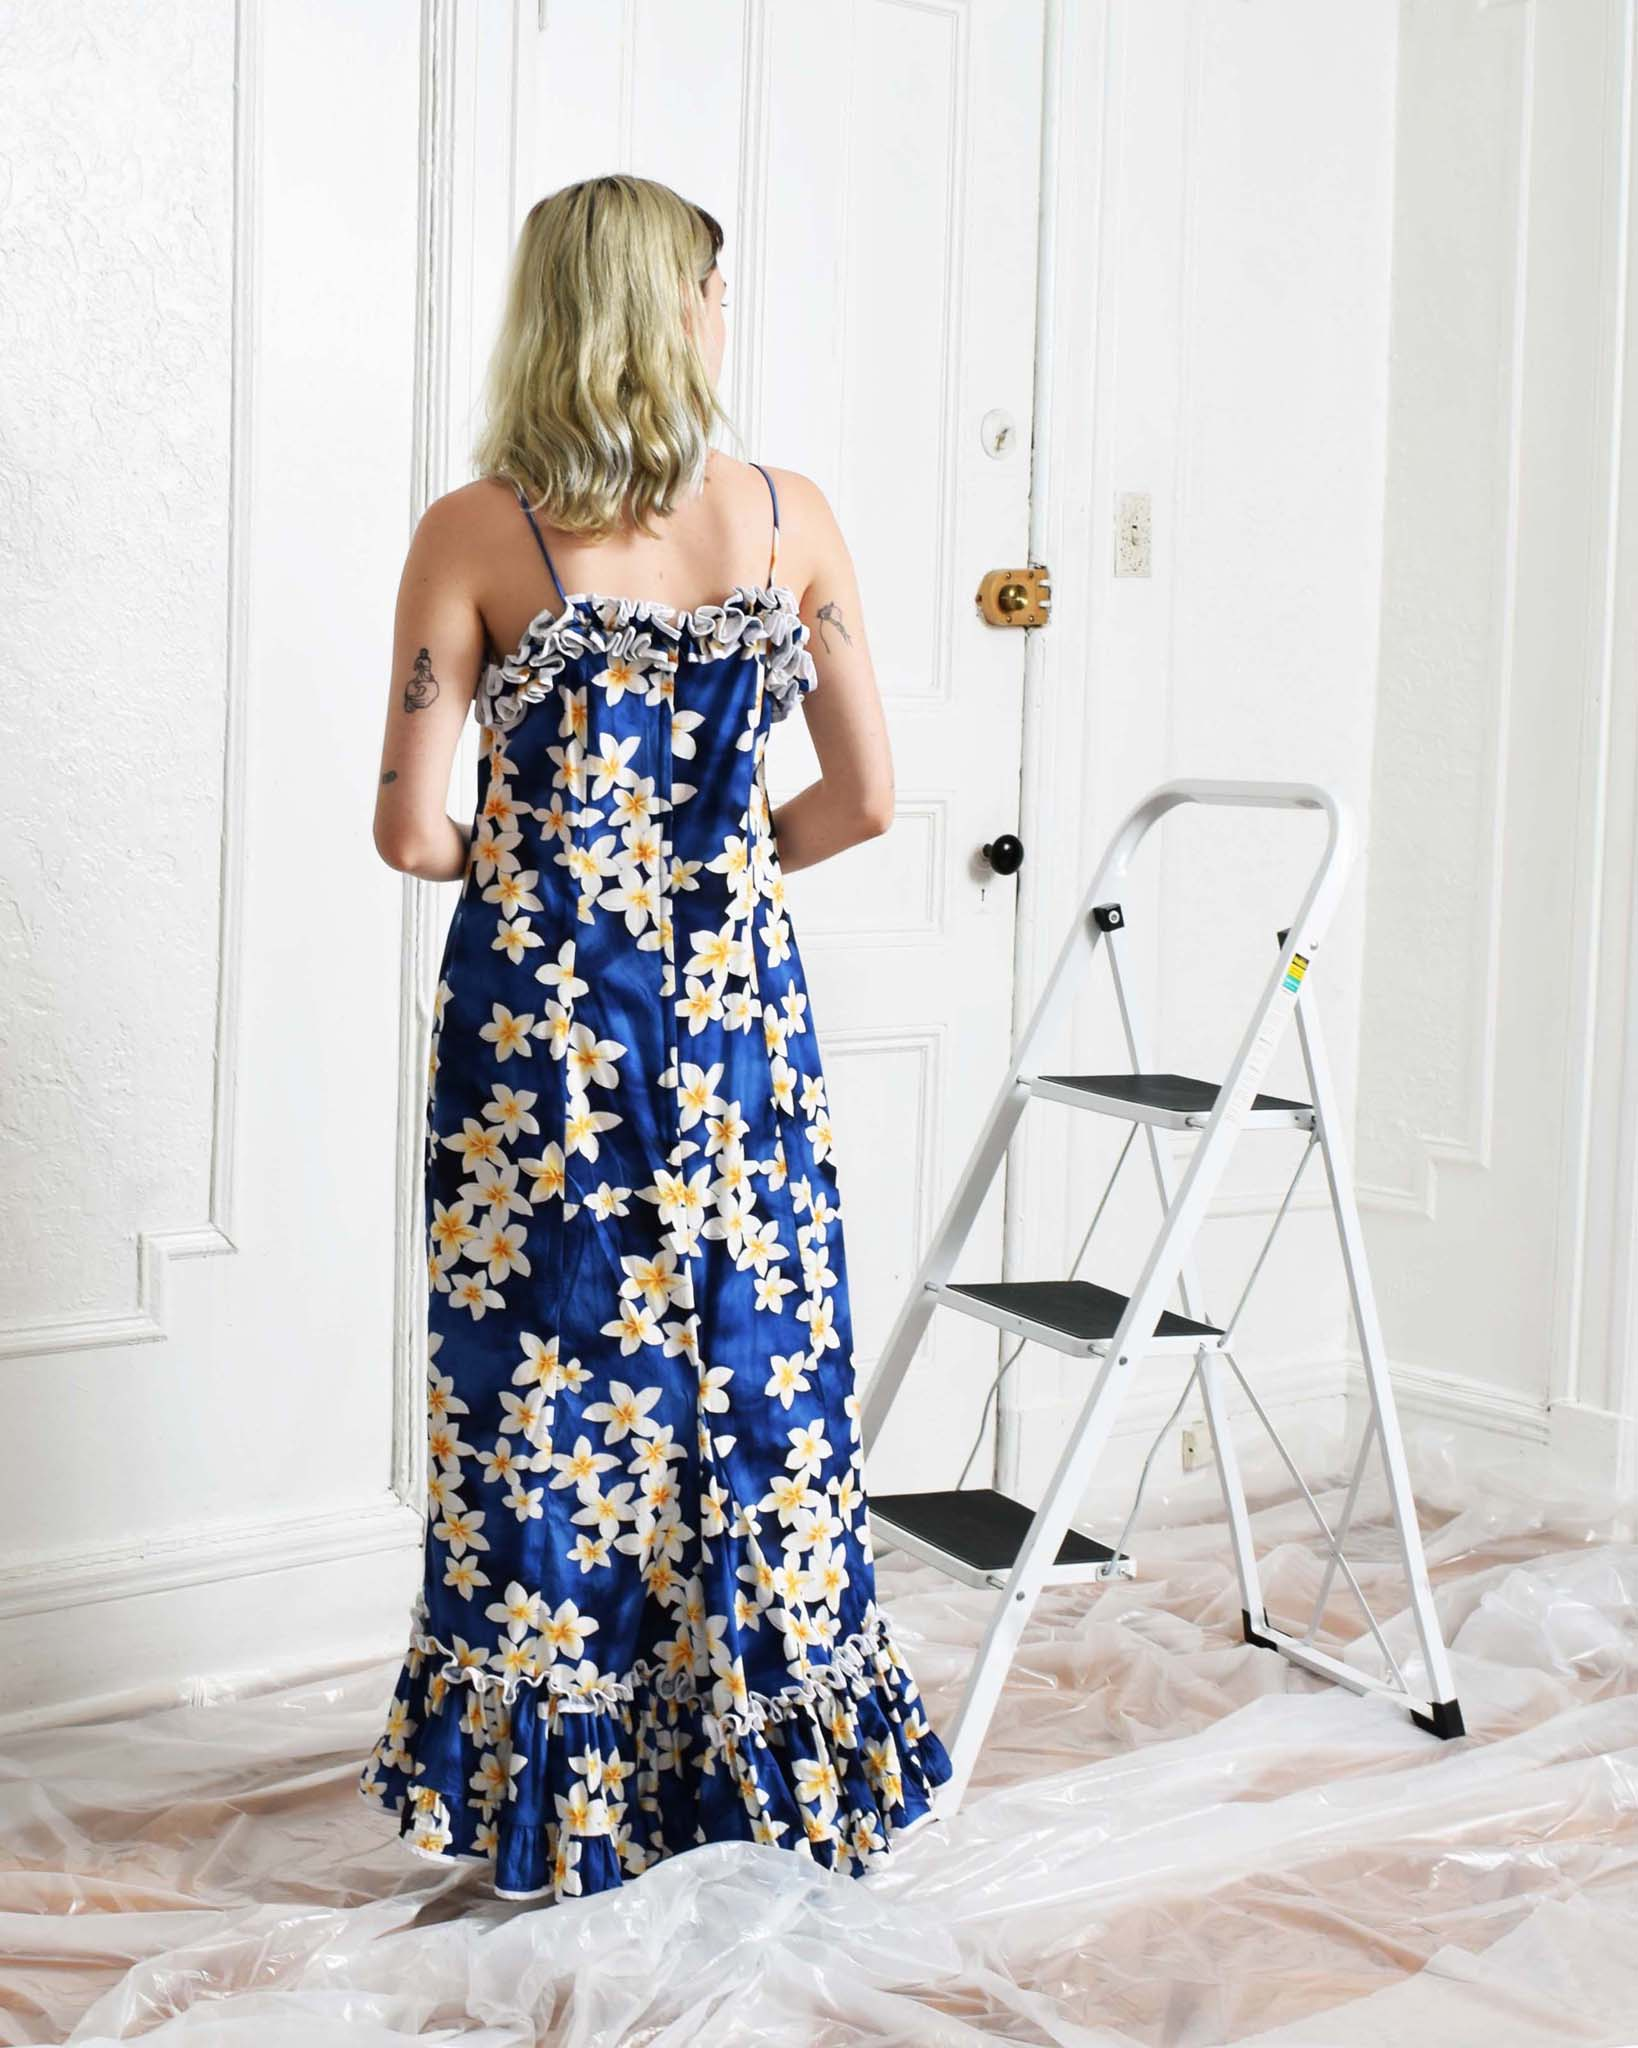 Vintage Ruffled Blue Floral Dress